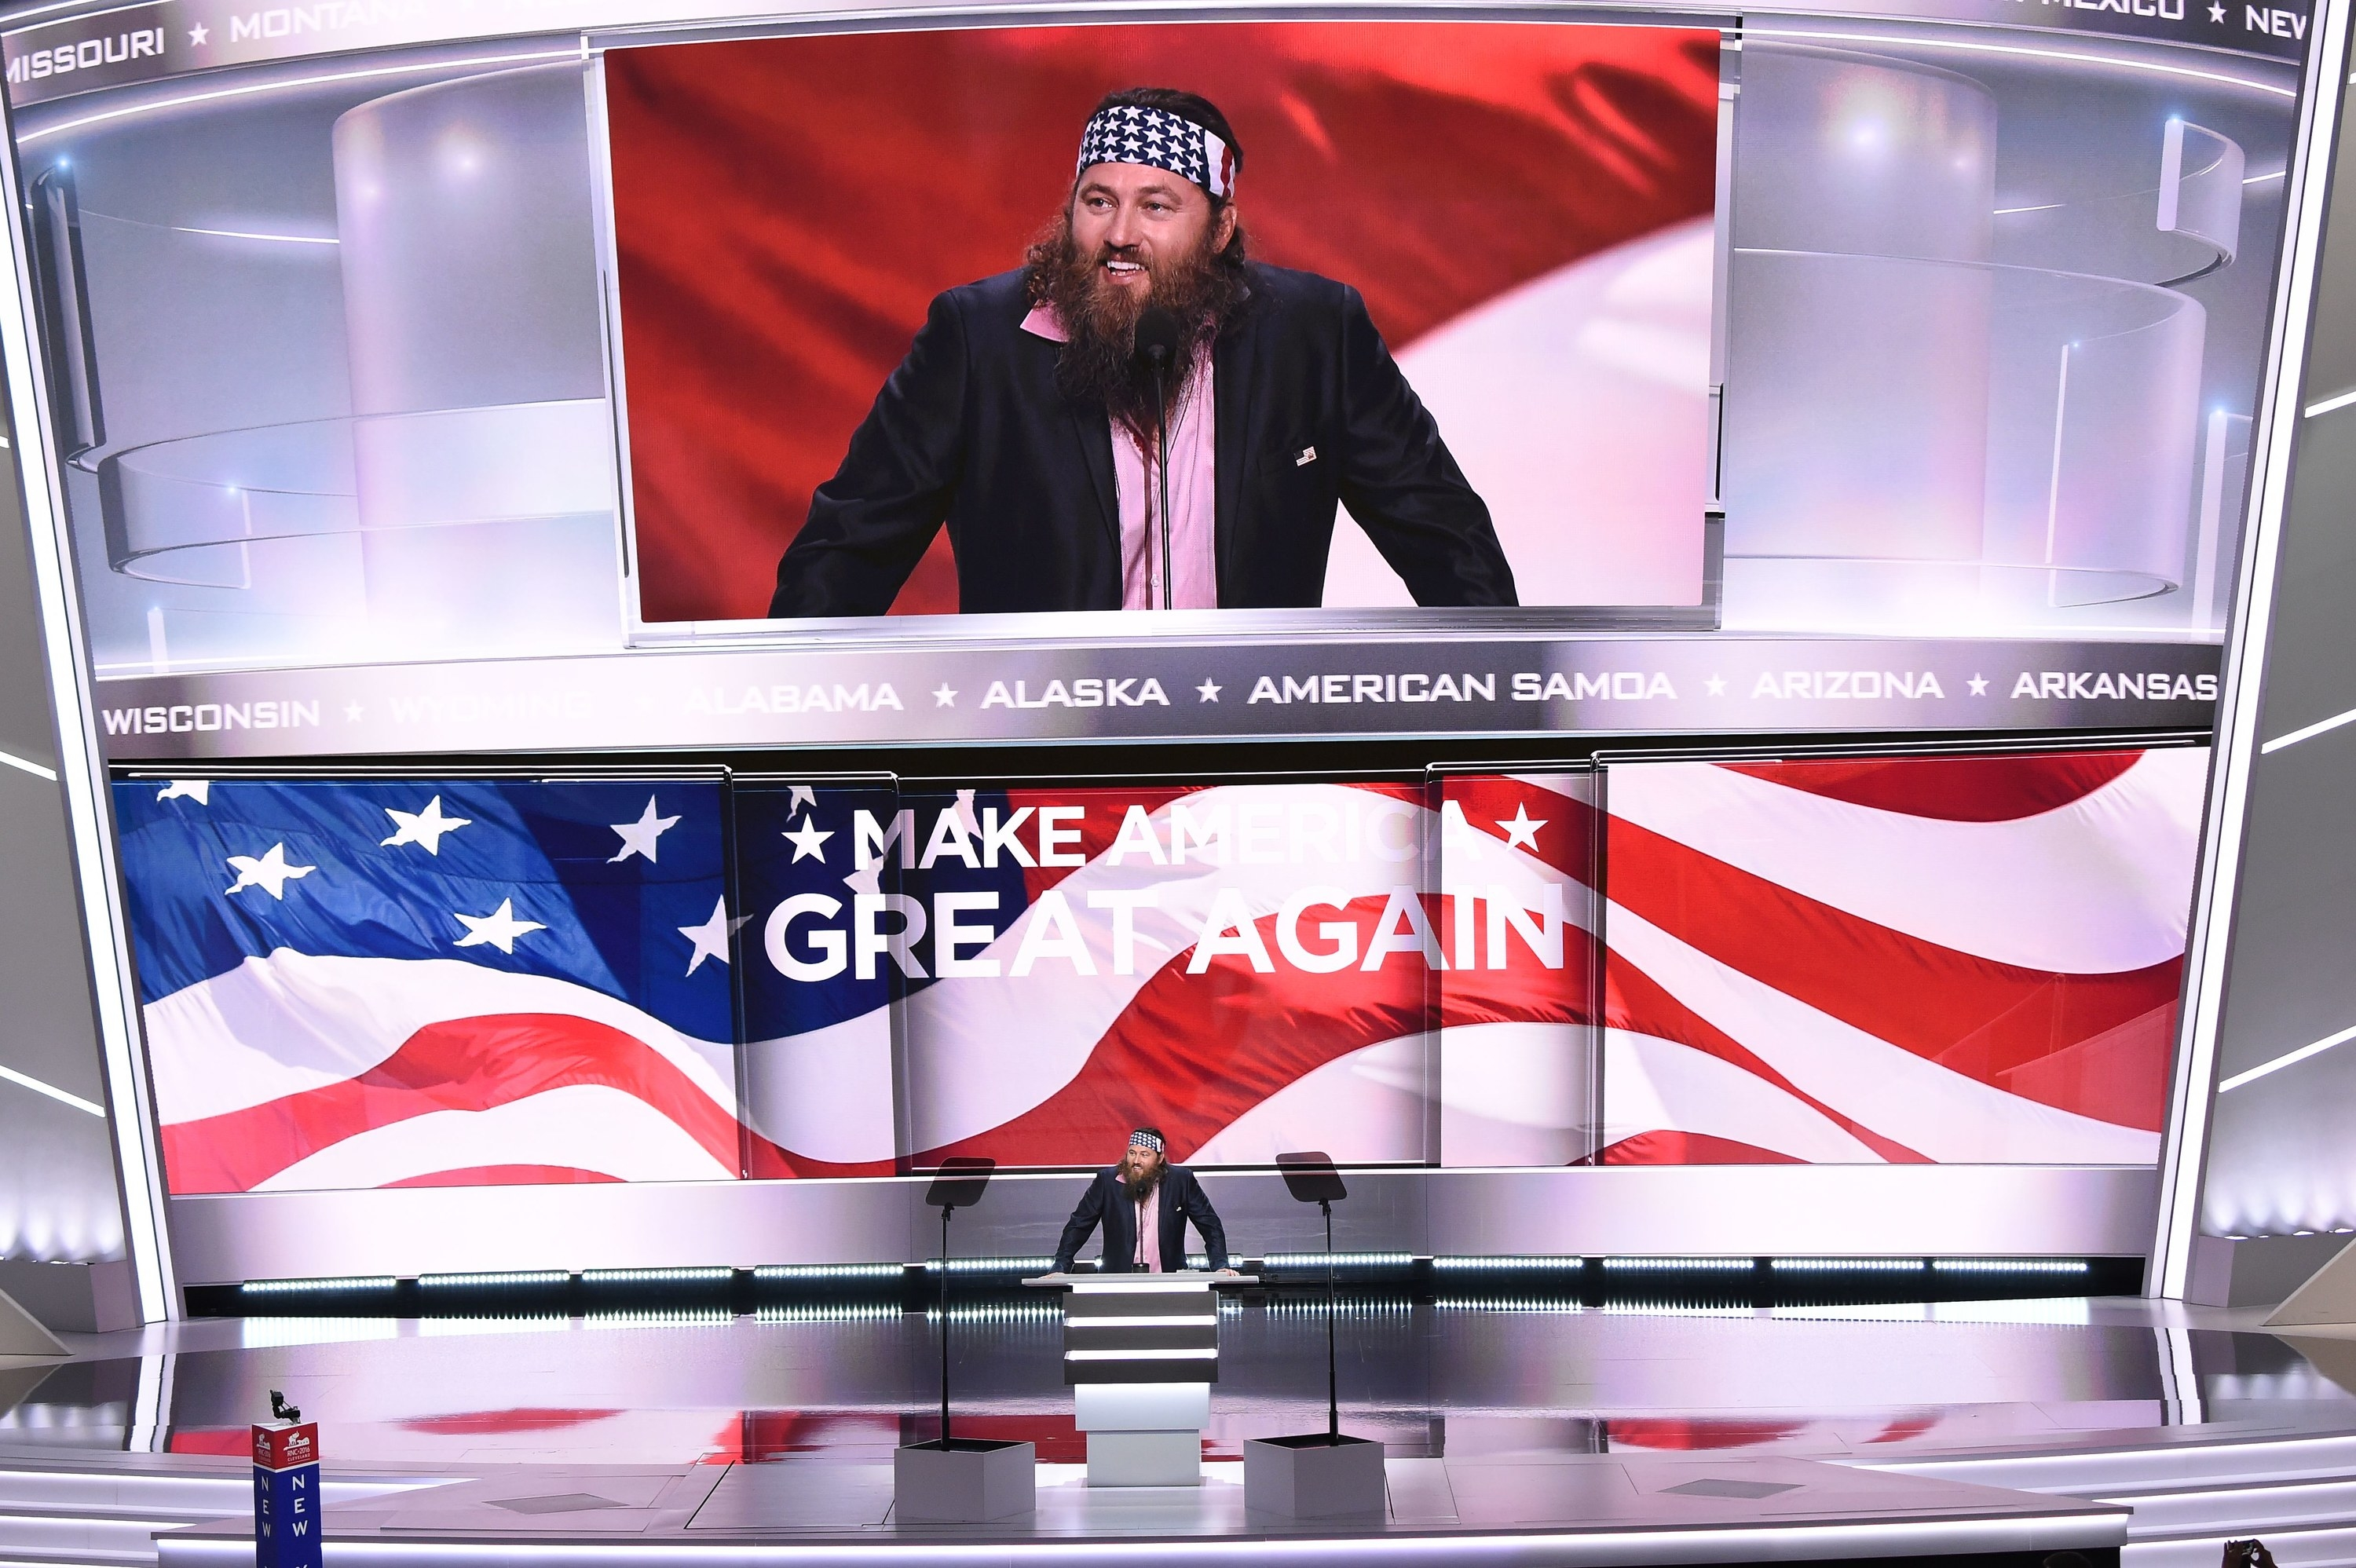 A member of the Duck Dynasty family speaking at the RNC